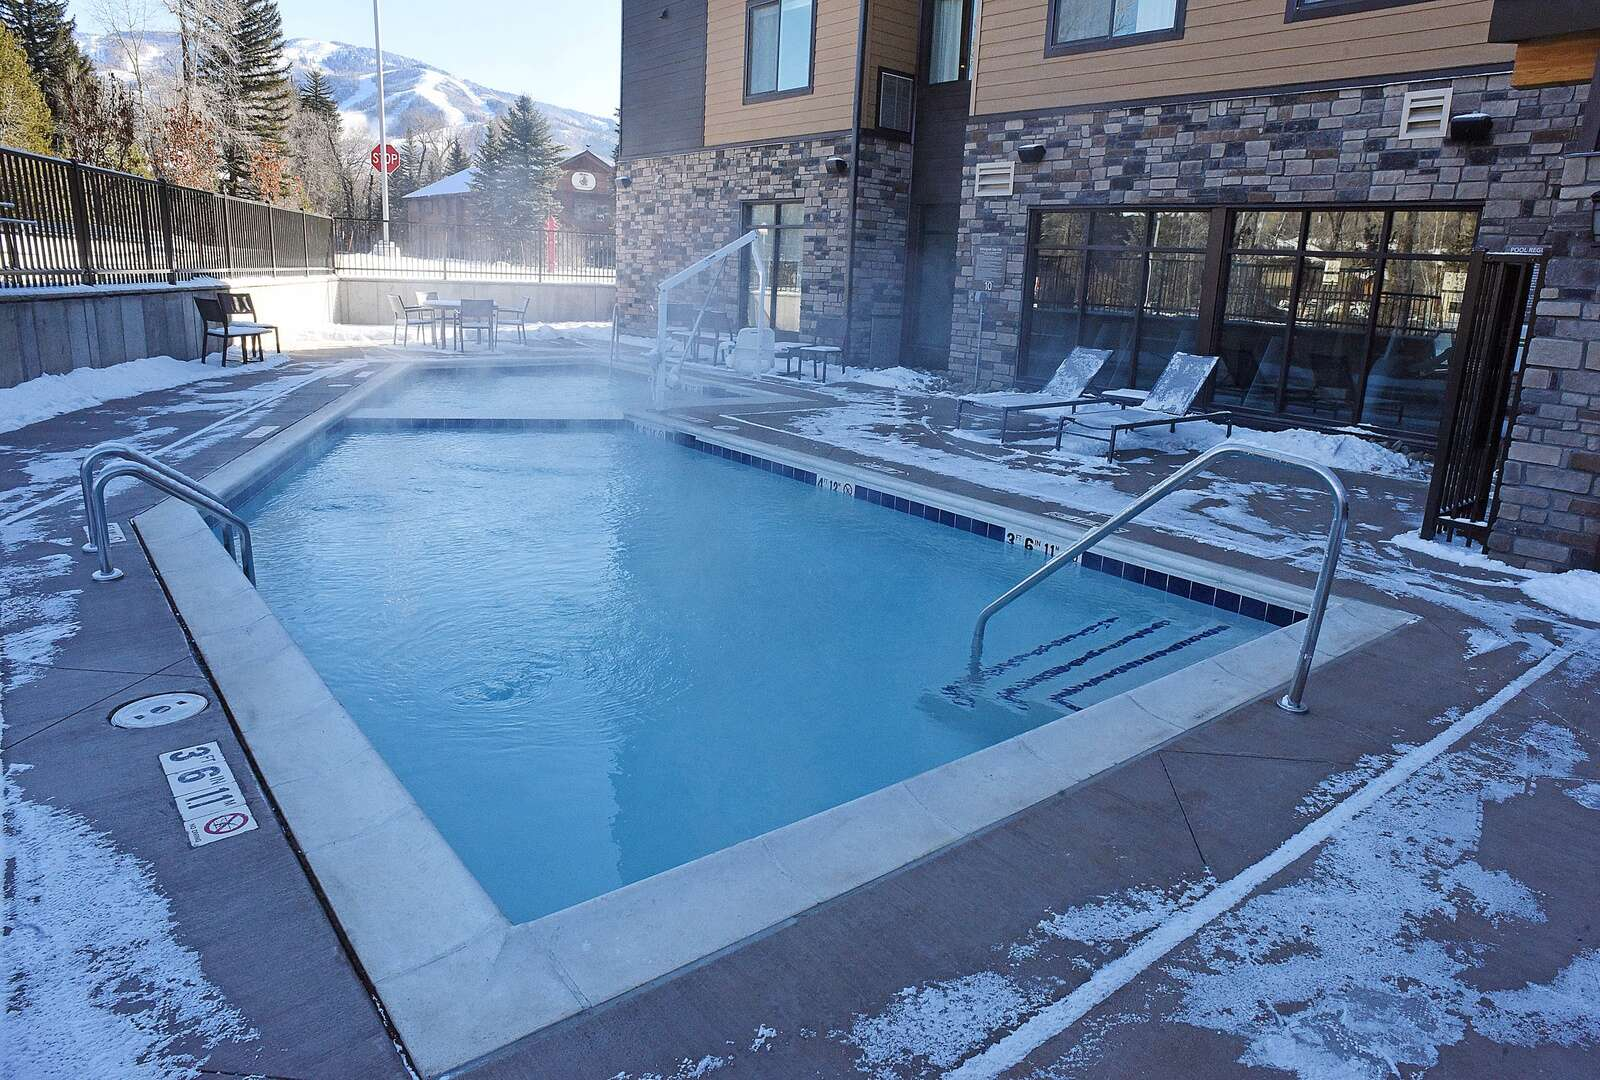 The new Residence Inn by Marriott will offer guest an outdoor heated pool and spa. (Photo by John F. Russell)